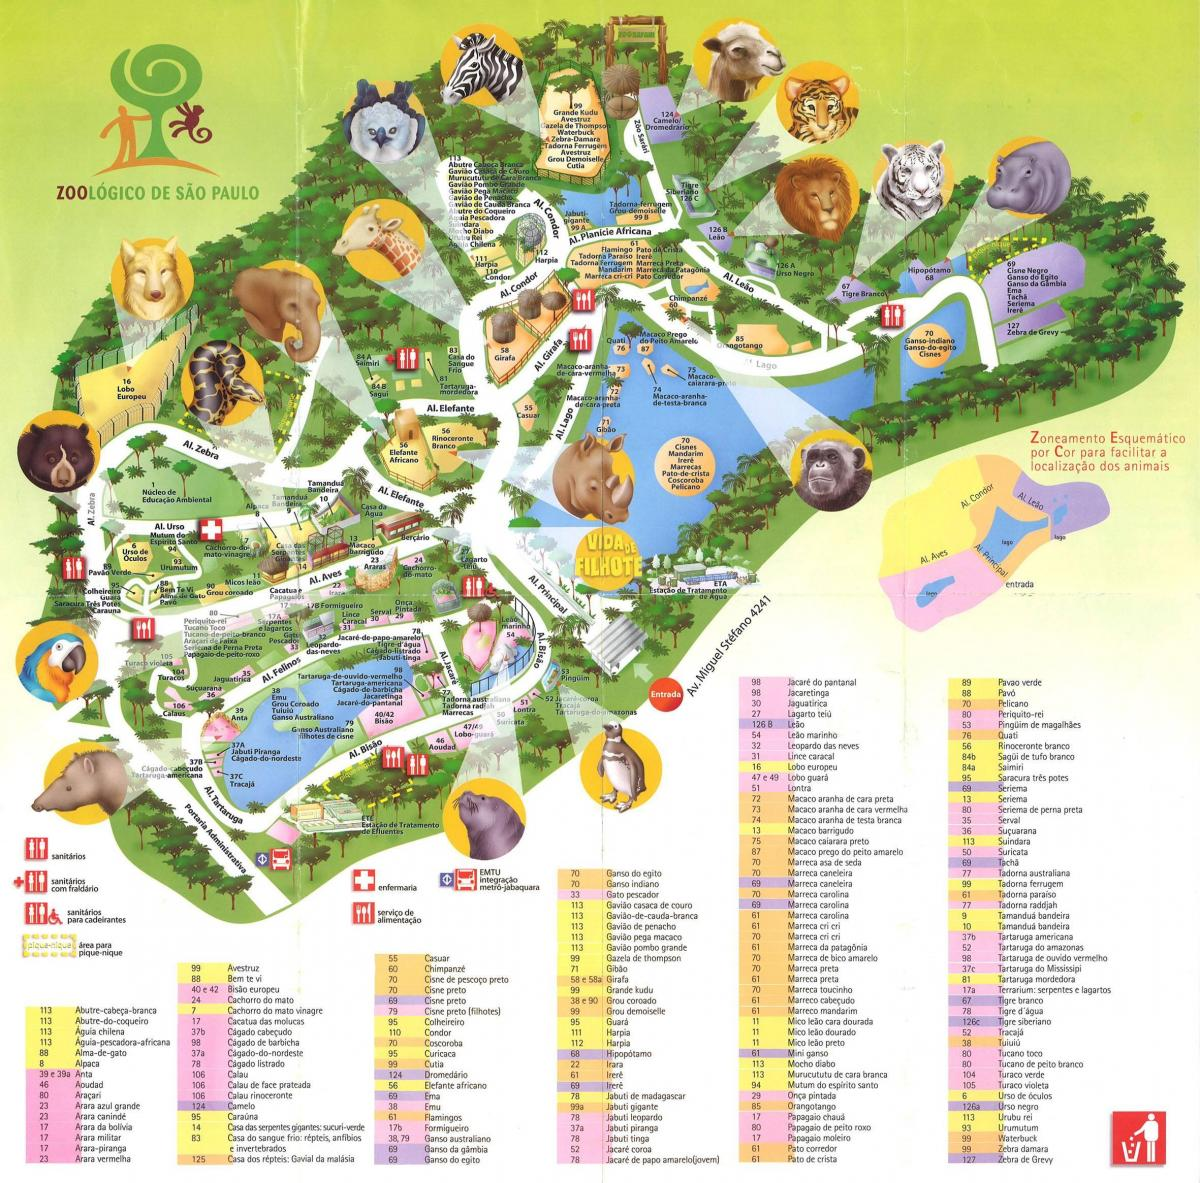 Map of zoological park of São Paulo